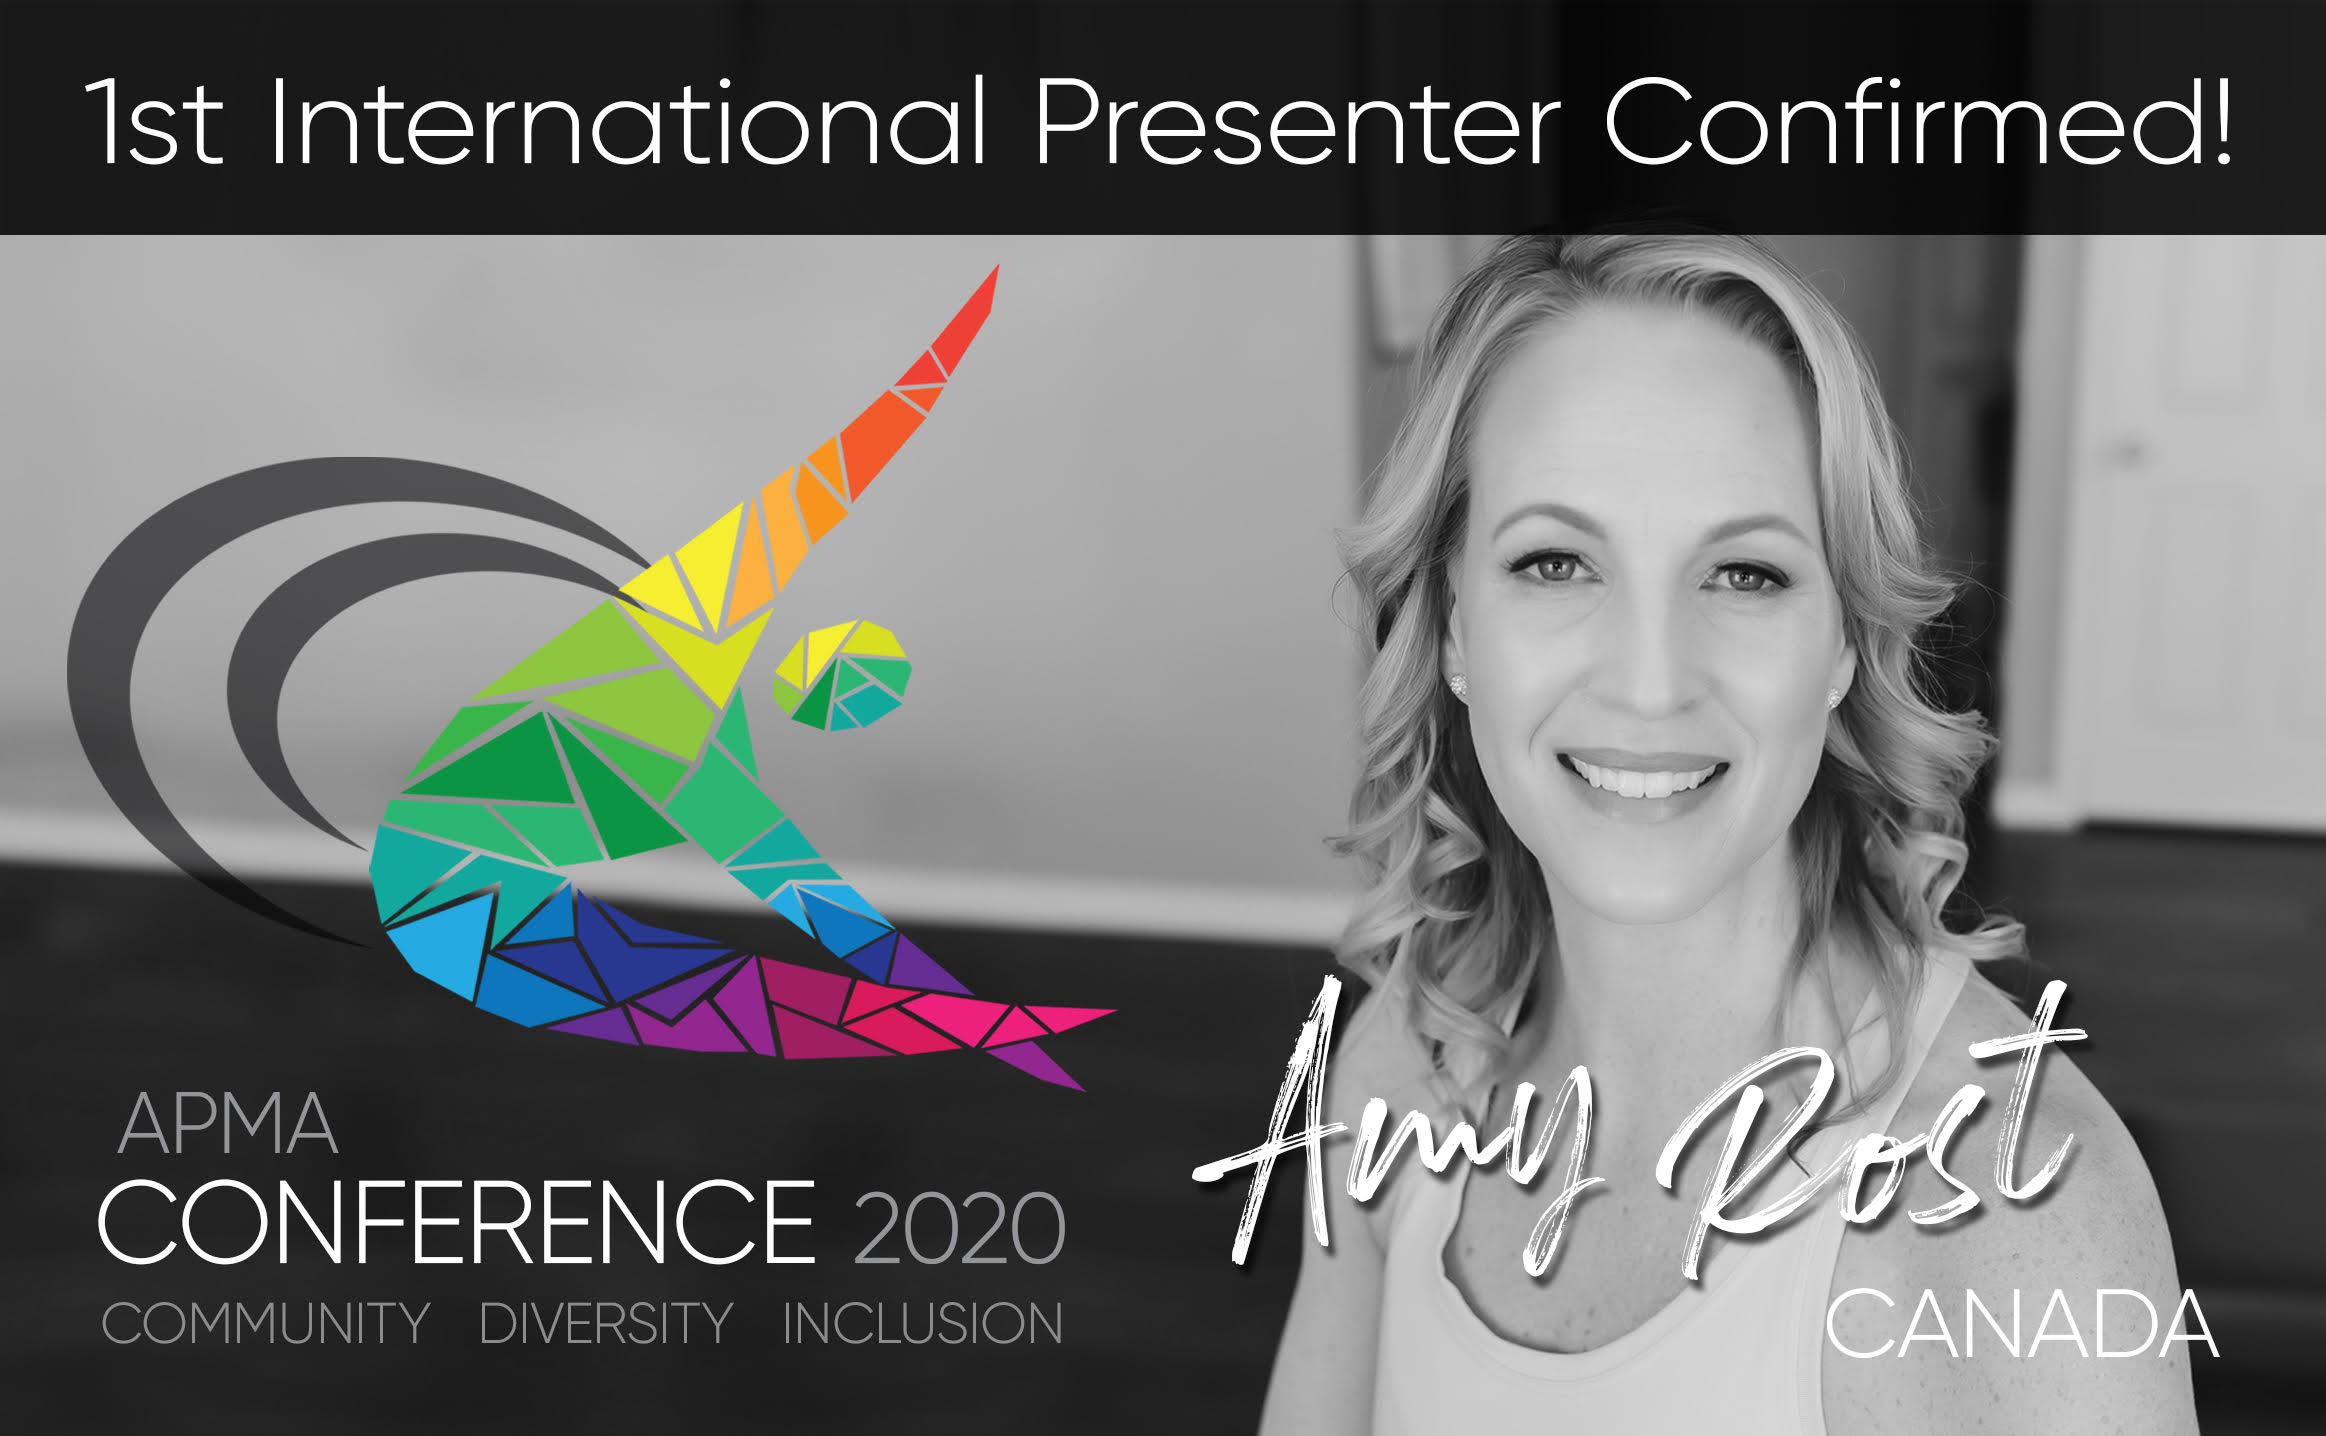 Announce our first confirmed international presenter for our 2020 Conference - Amy Rost